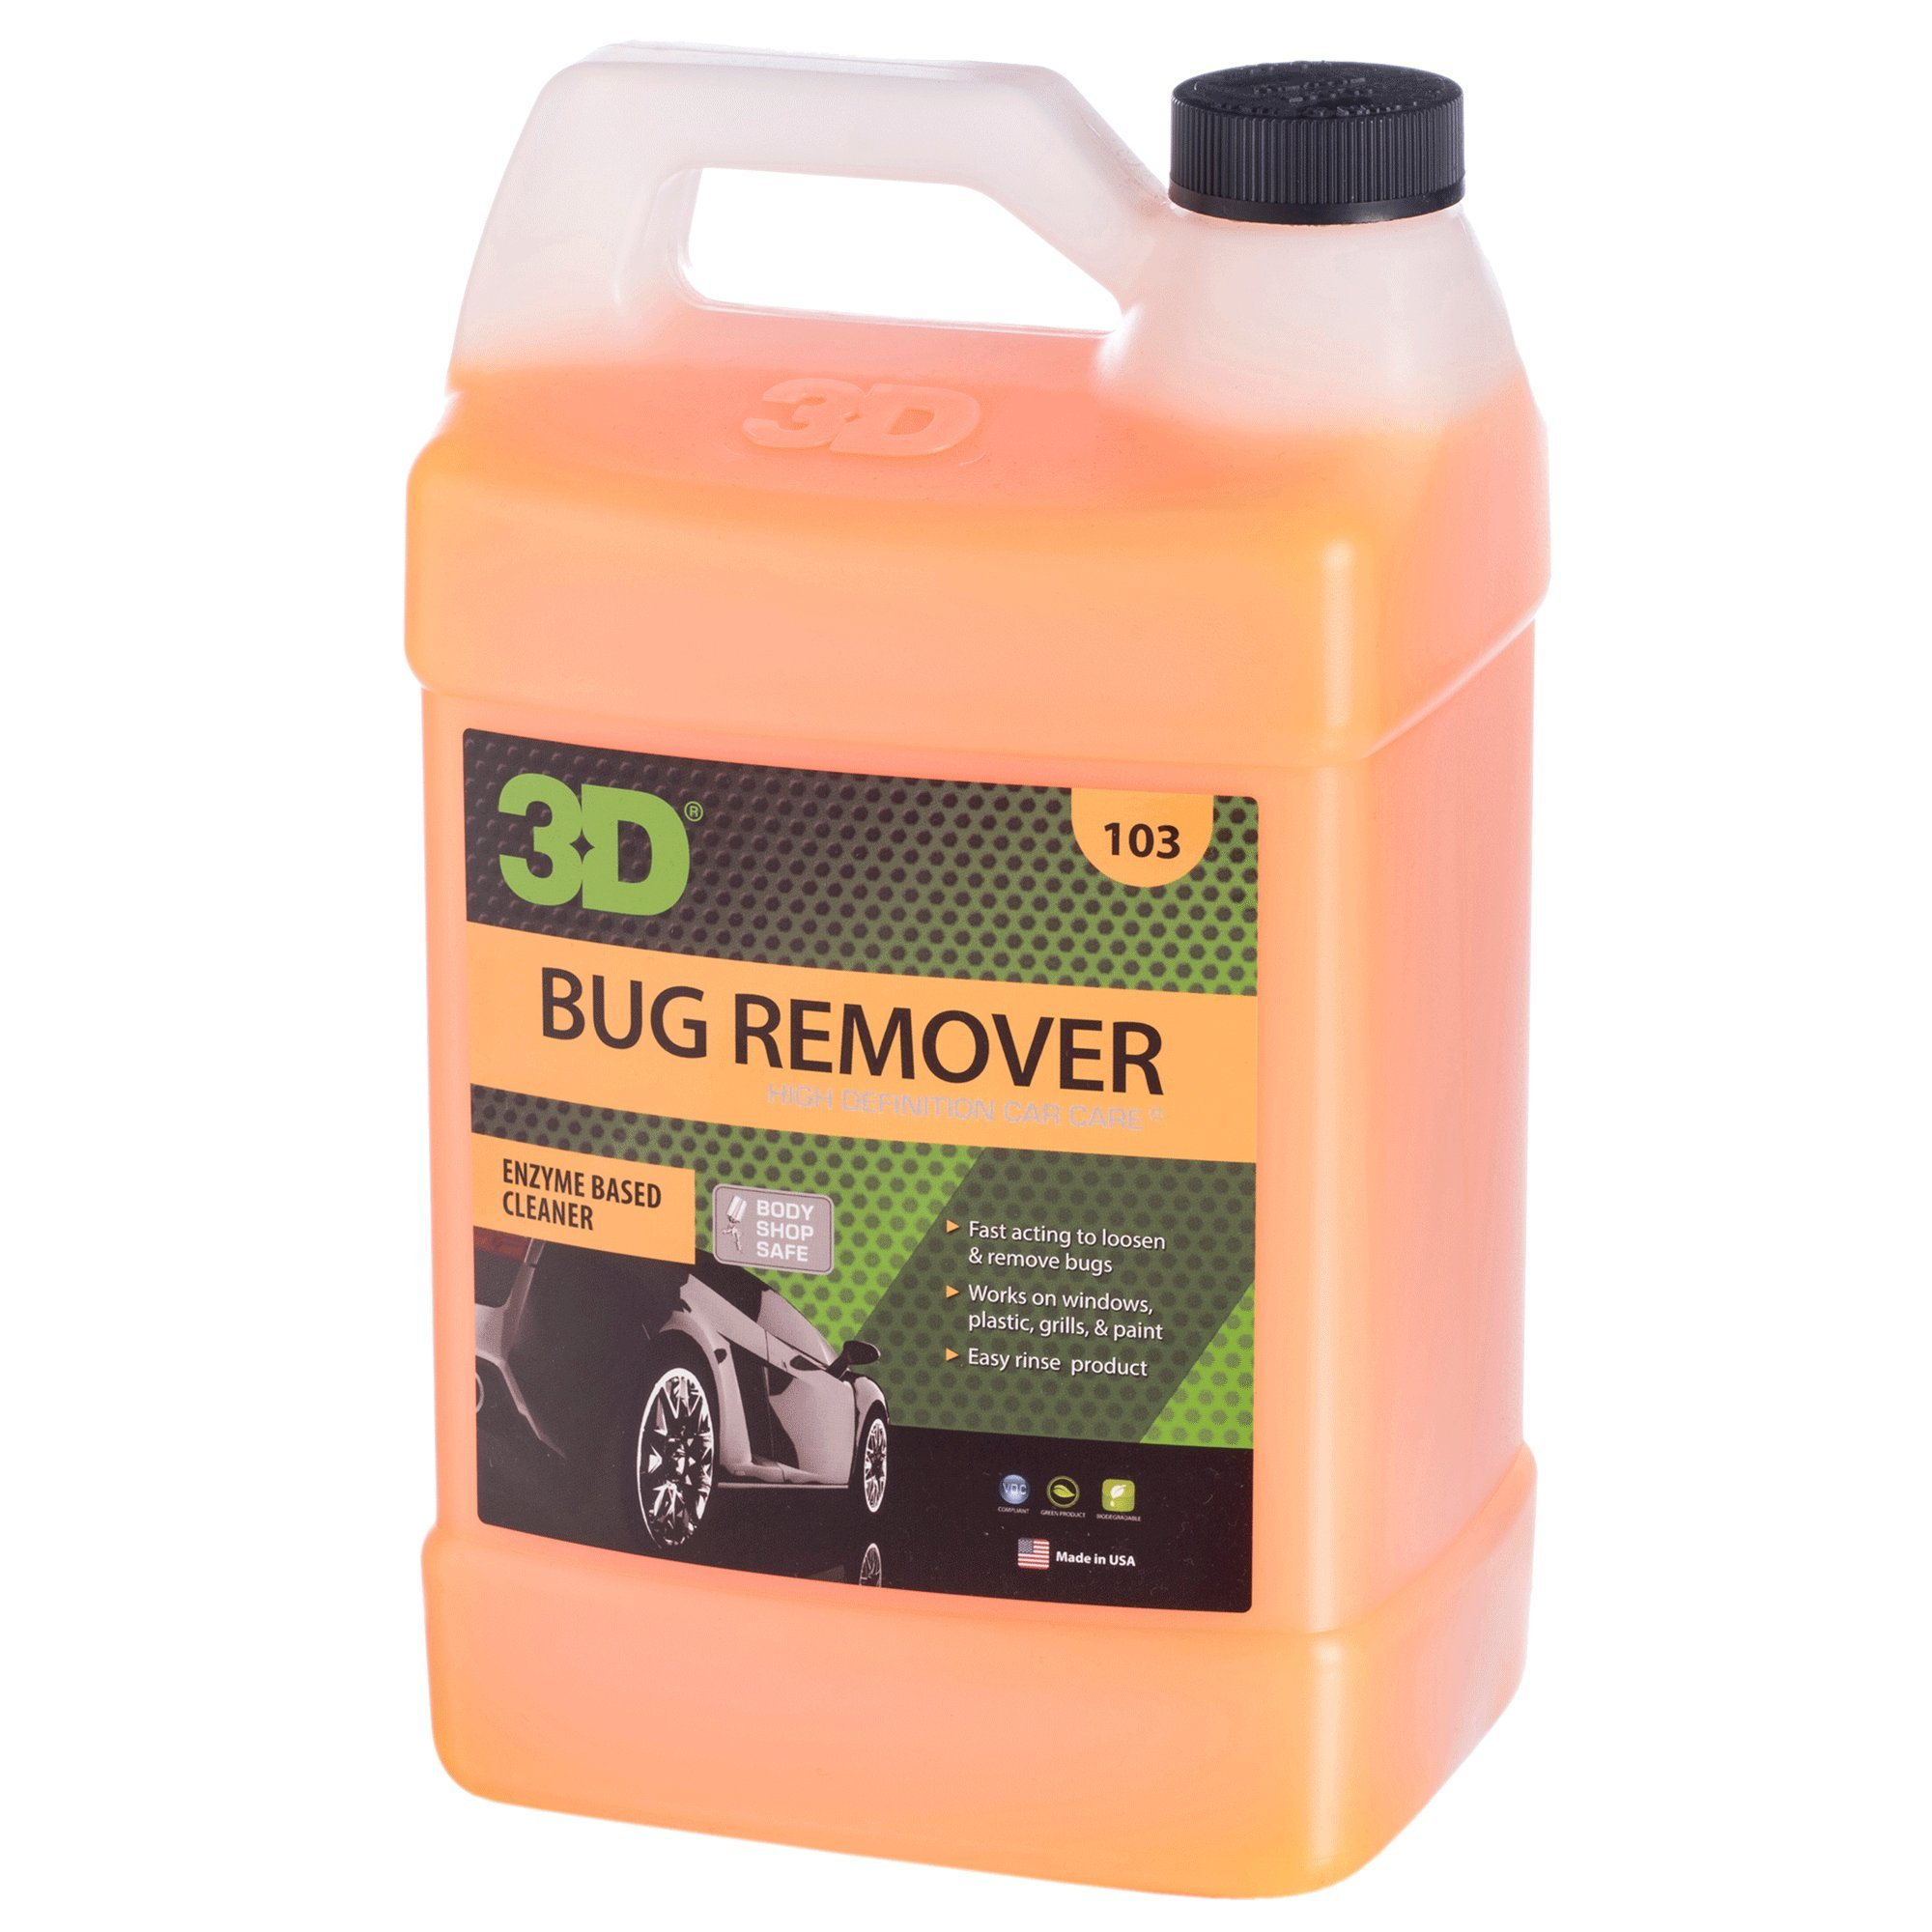 3D Bug Remover Concentrate Concentrated